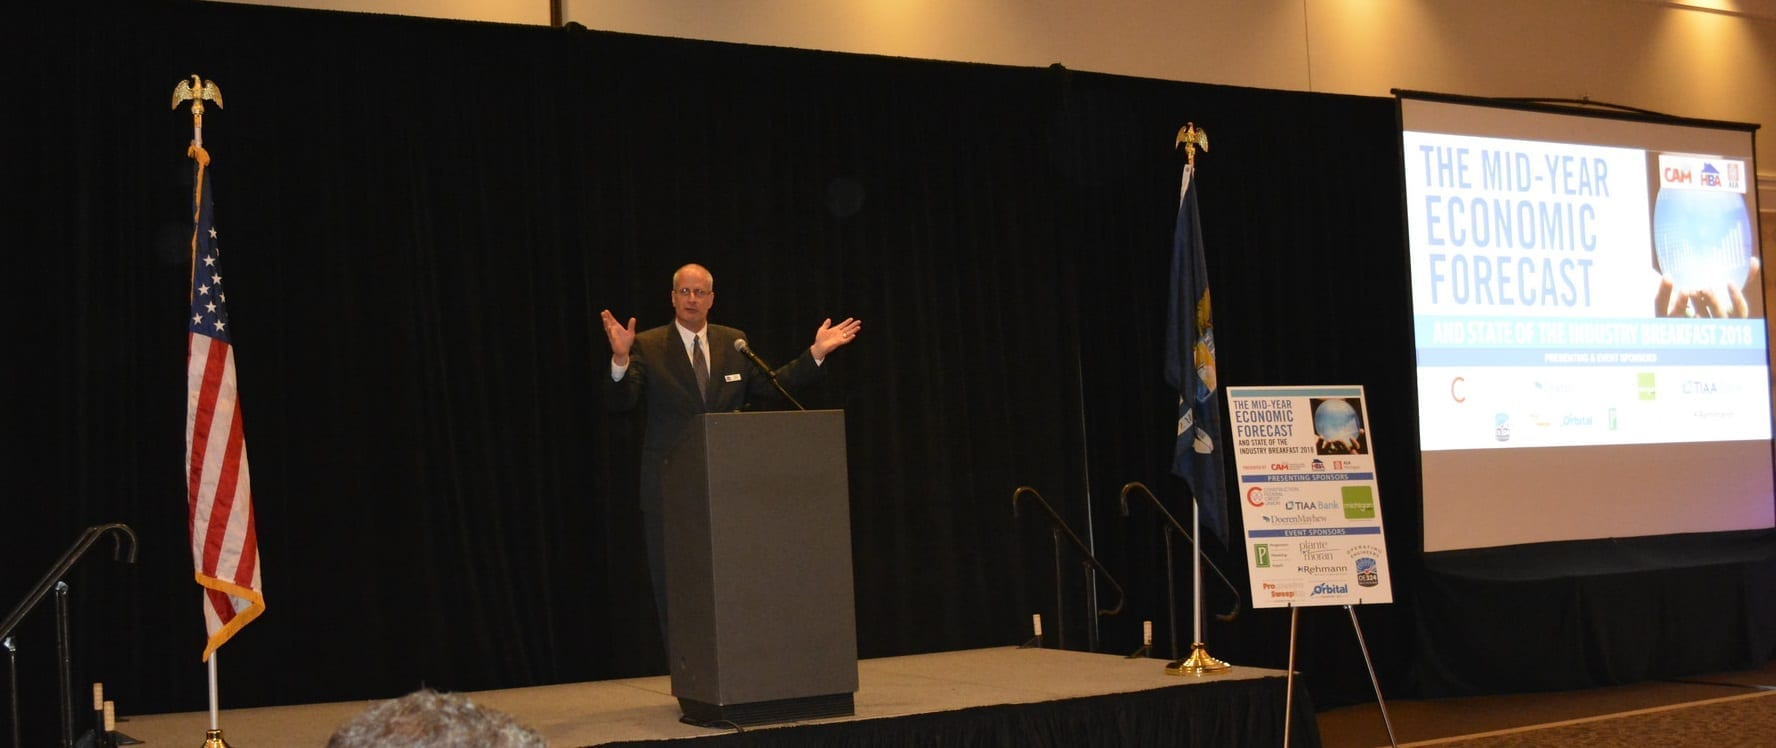 The Mid-Year Economic Forecast a Success